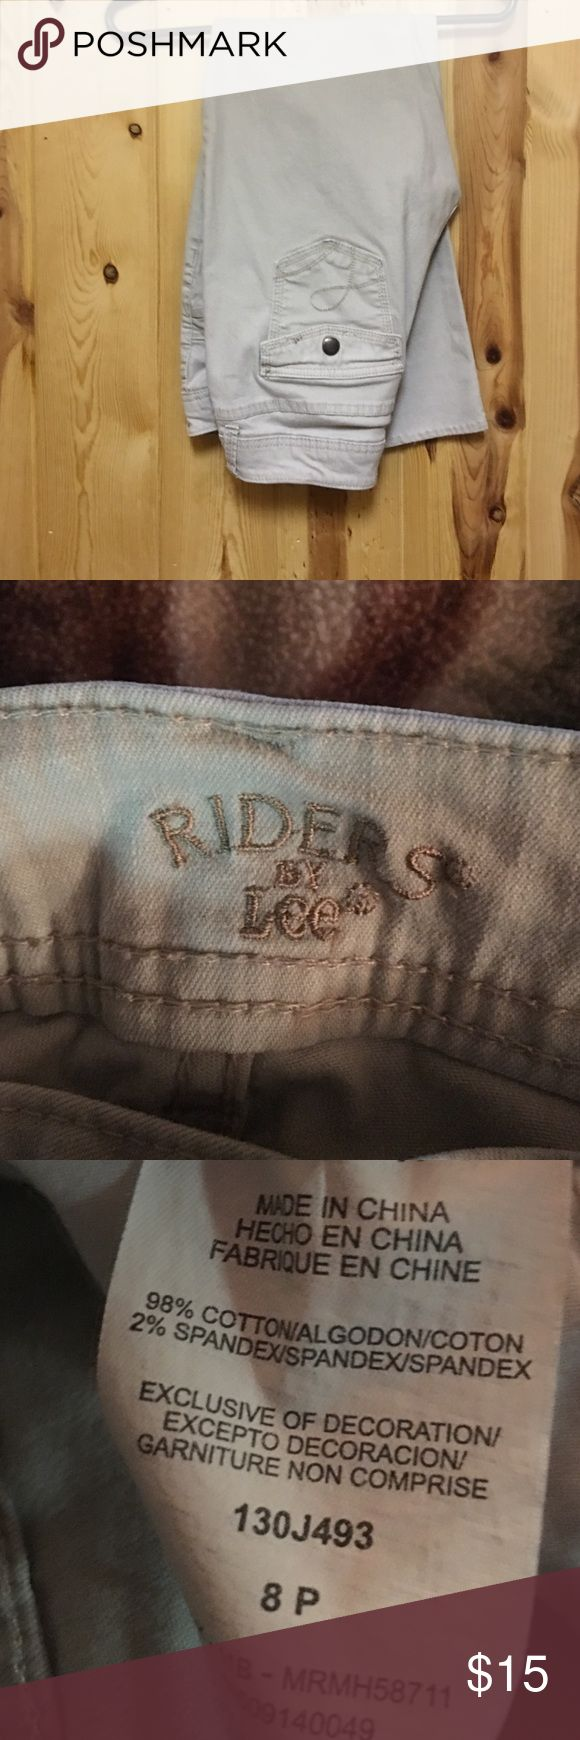 Lee Rider Jeans Khaki 8 Petite Excellent Condition Lee Rider Jeans Khaki 8 Petite Excellent Condition Lee Riders Jeans Straight Leg